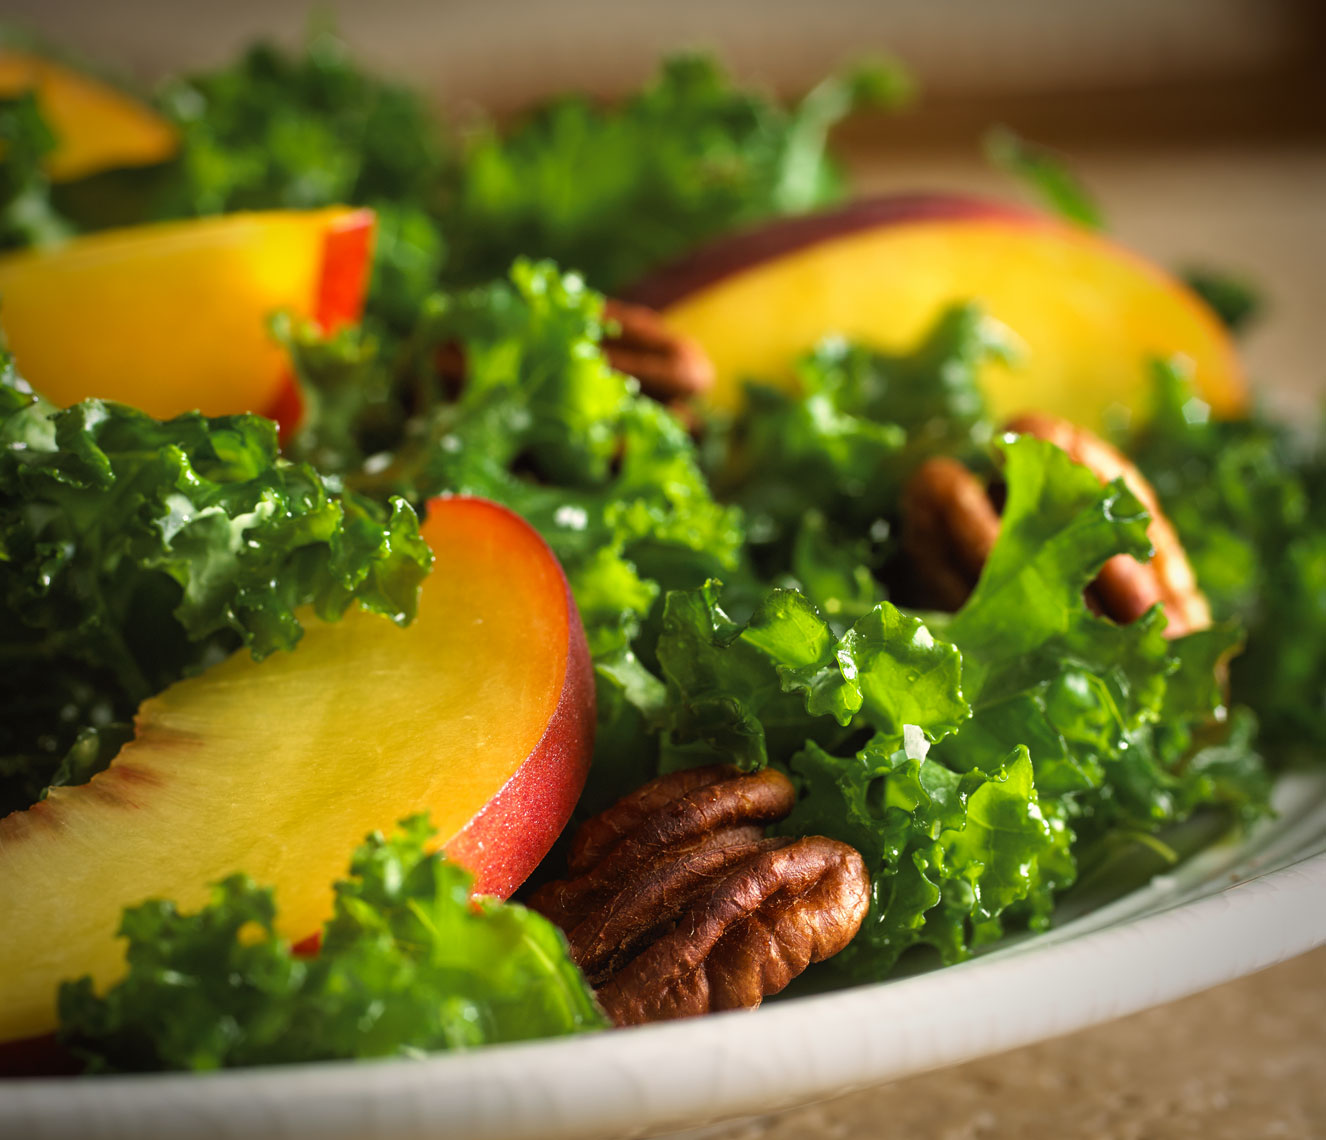 Walnut peach salad/large peach slices/walnuts on bed of greens/food photography